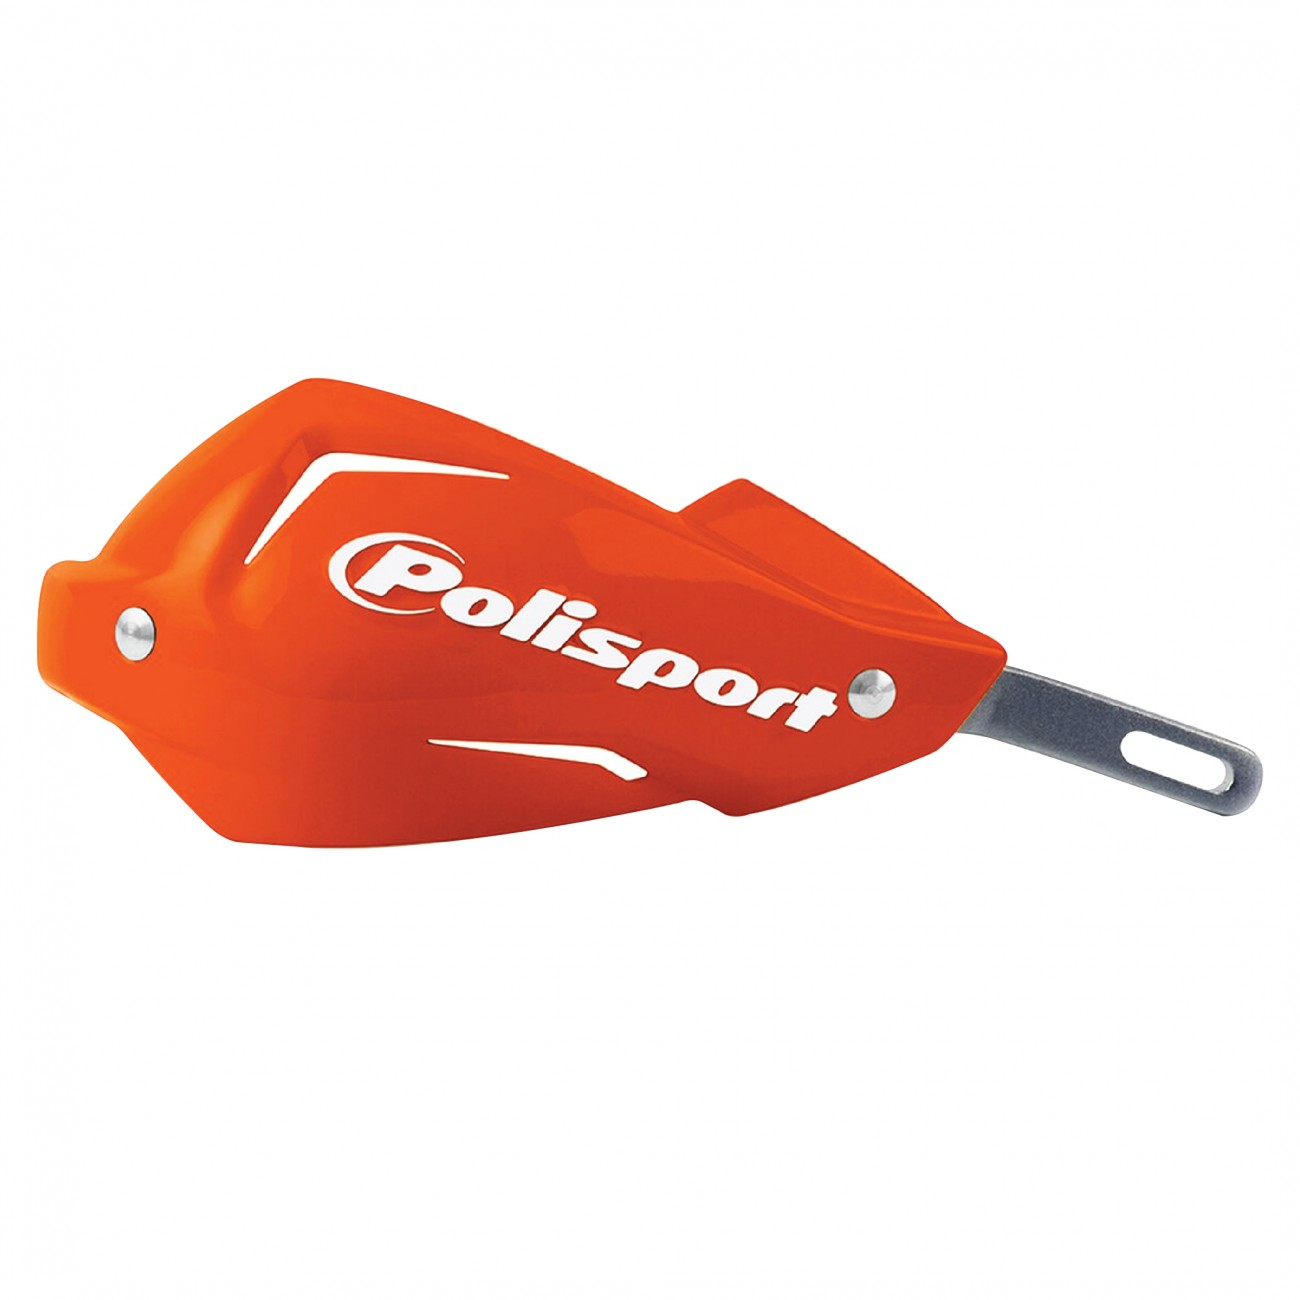 HAND PROTECTOR TOUQUET MOUNTING KIT 05